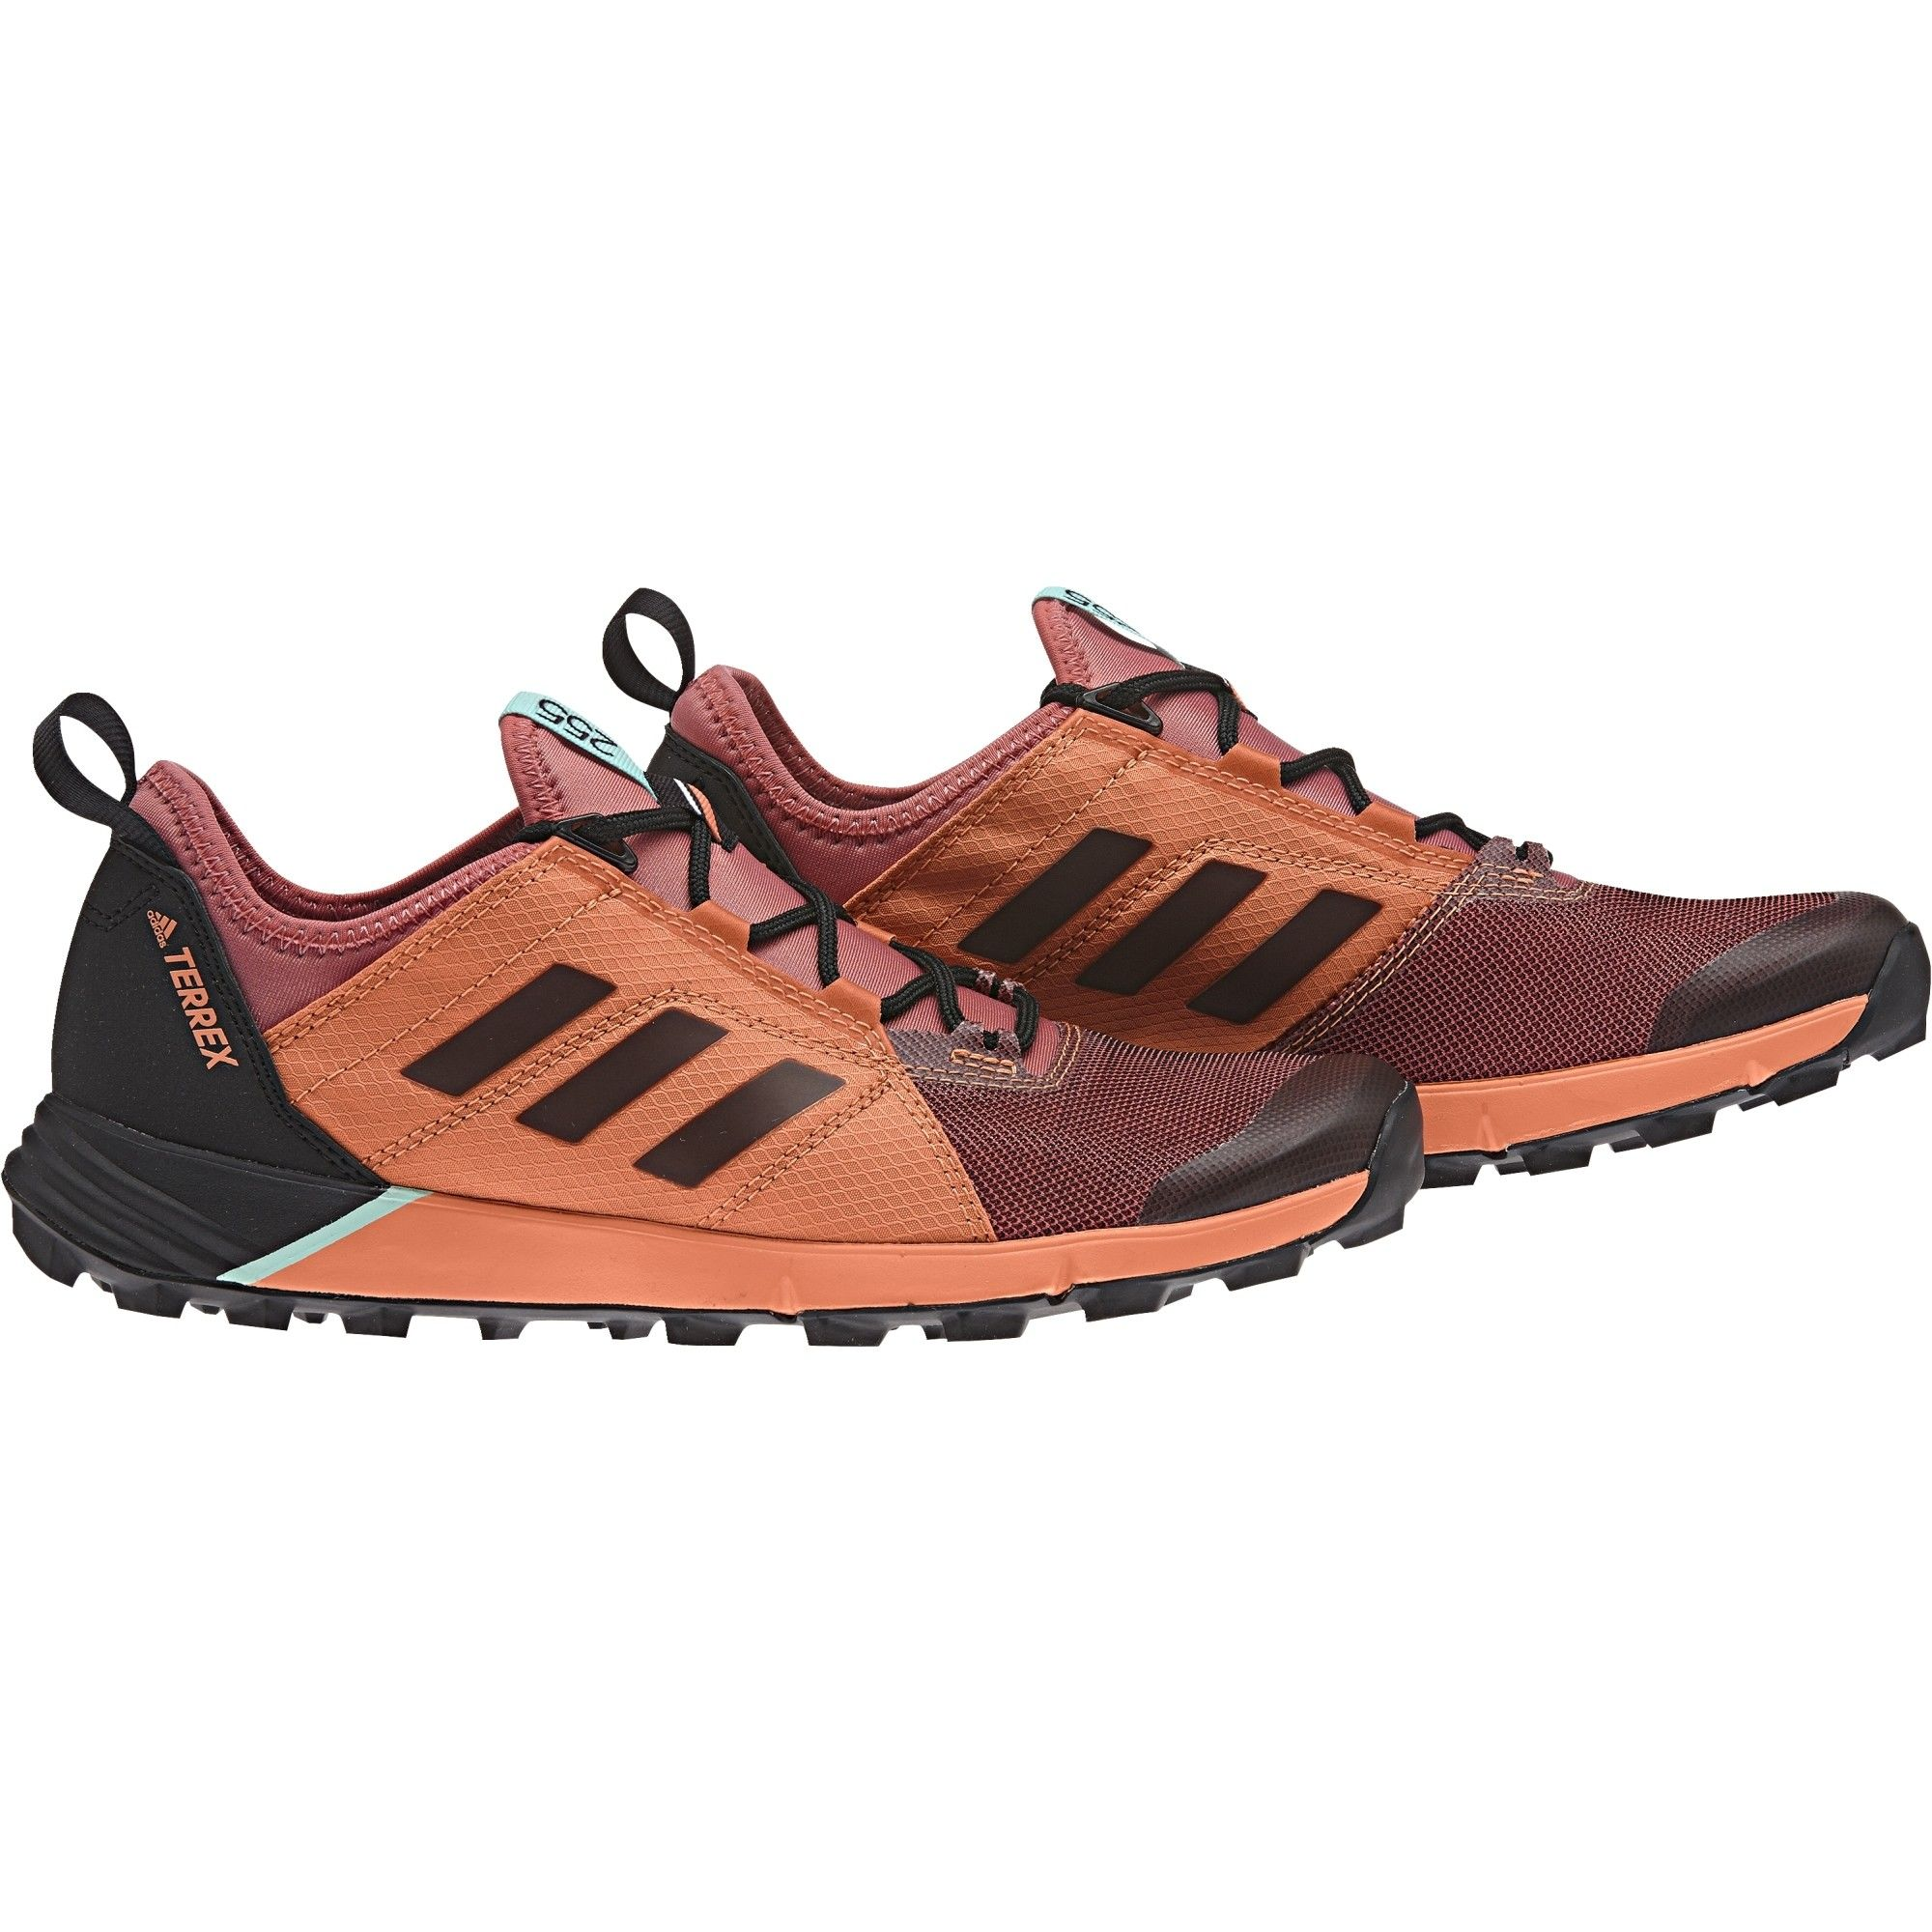 adidas Terrex Agravic Speed Rot, Female EU 38 -Farbe Tactile Pink -Core Black -E